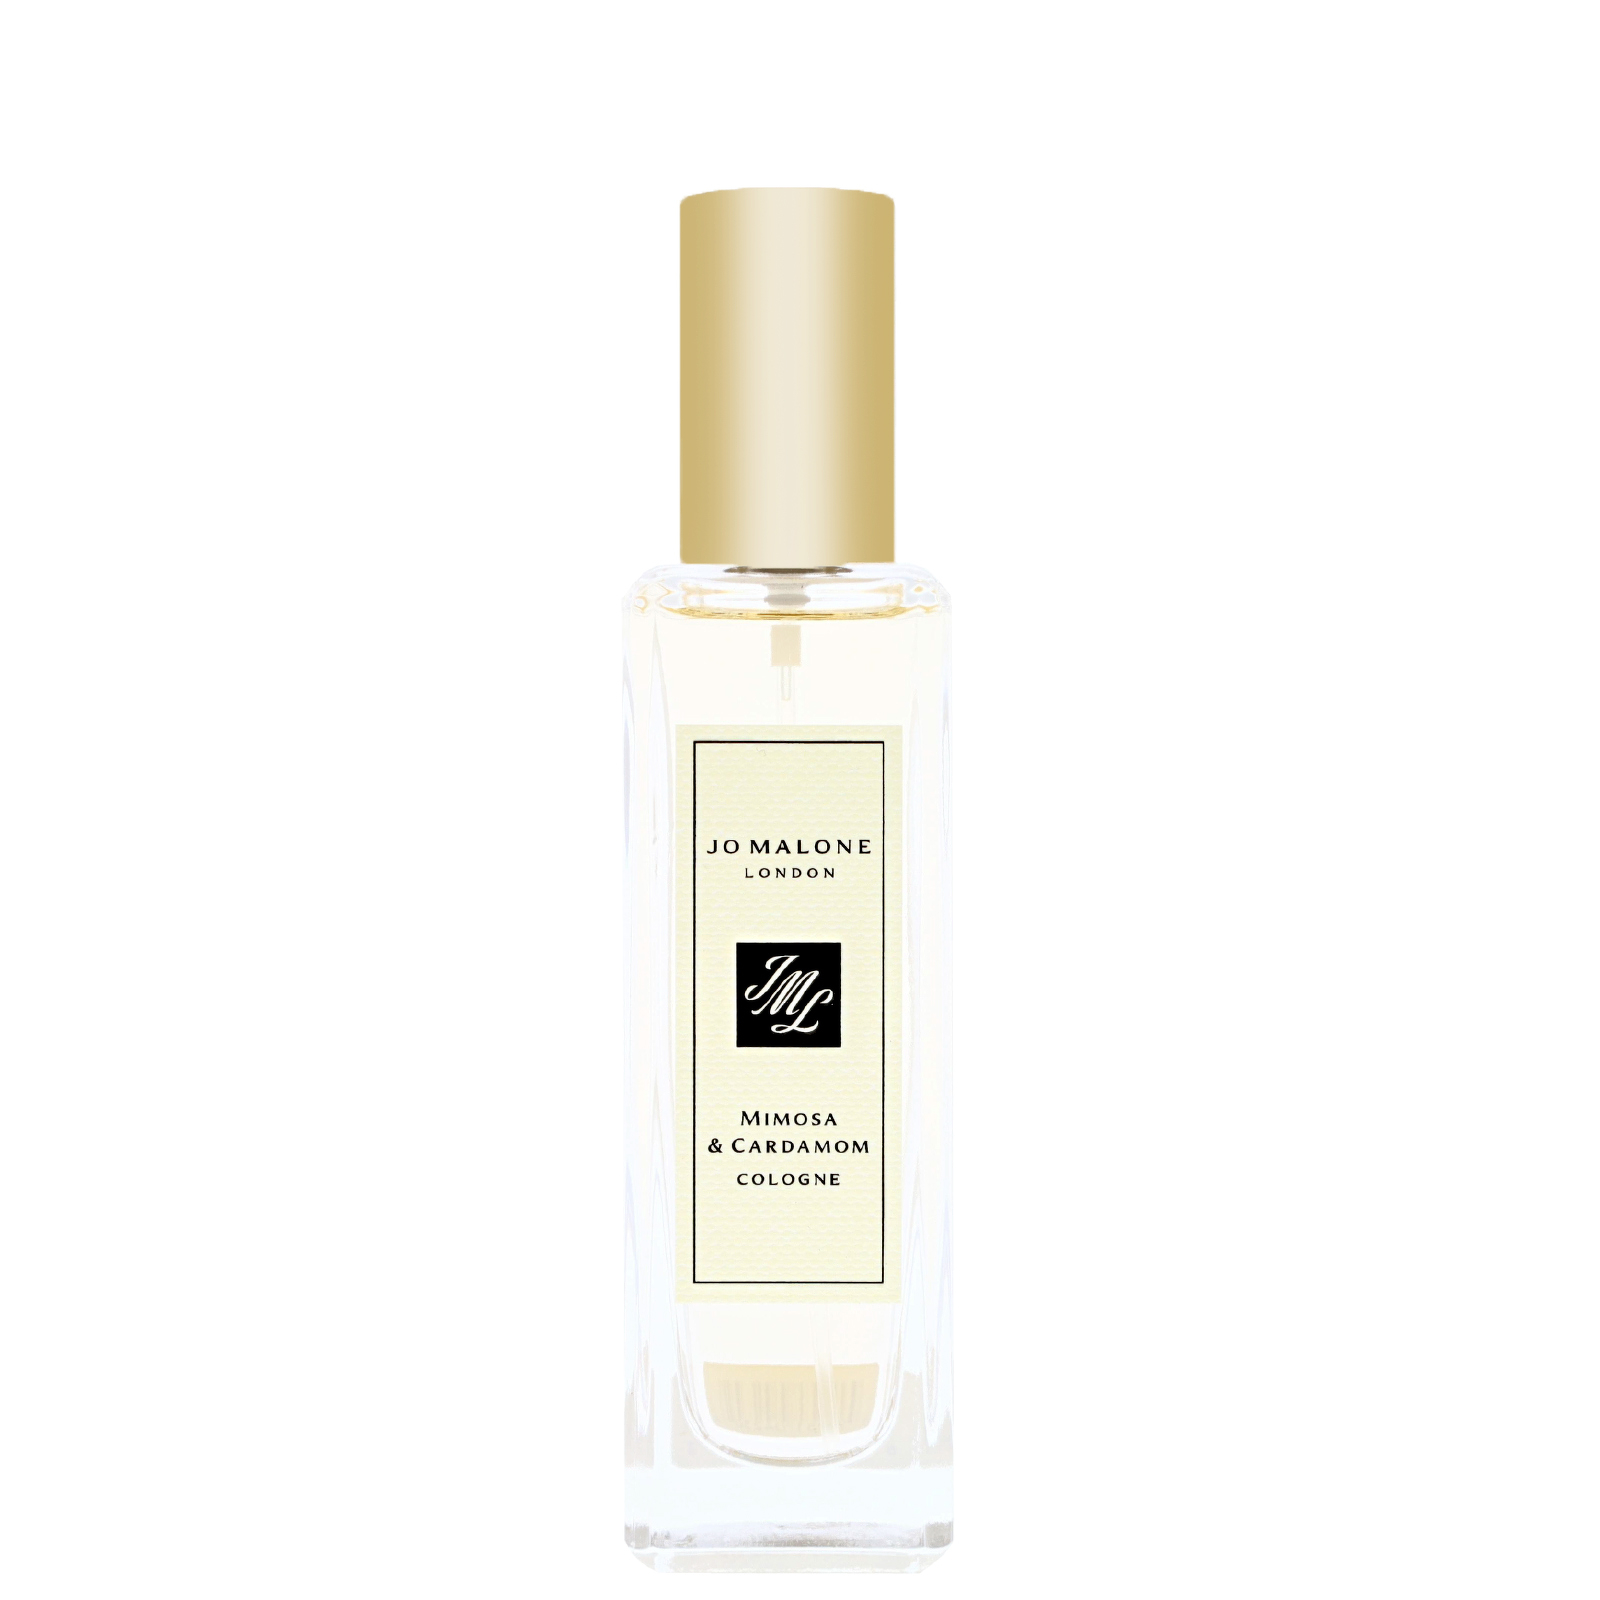 Jo Malone Mimosa & Cardamom Eau de Cologne Spray 30ml